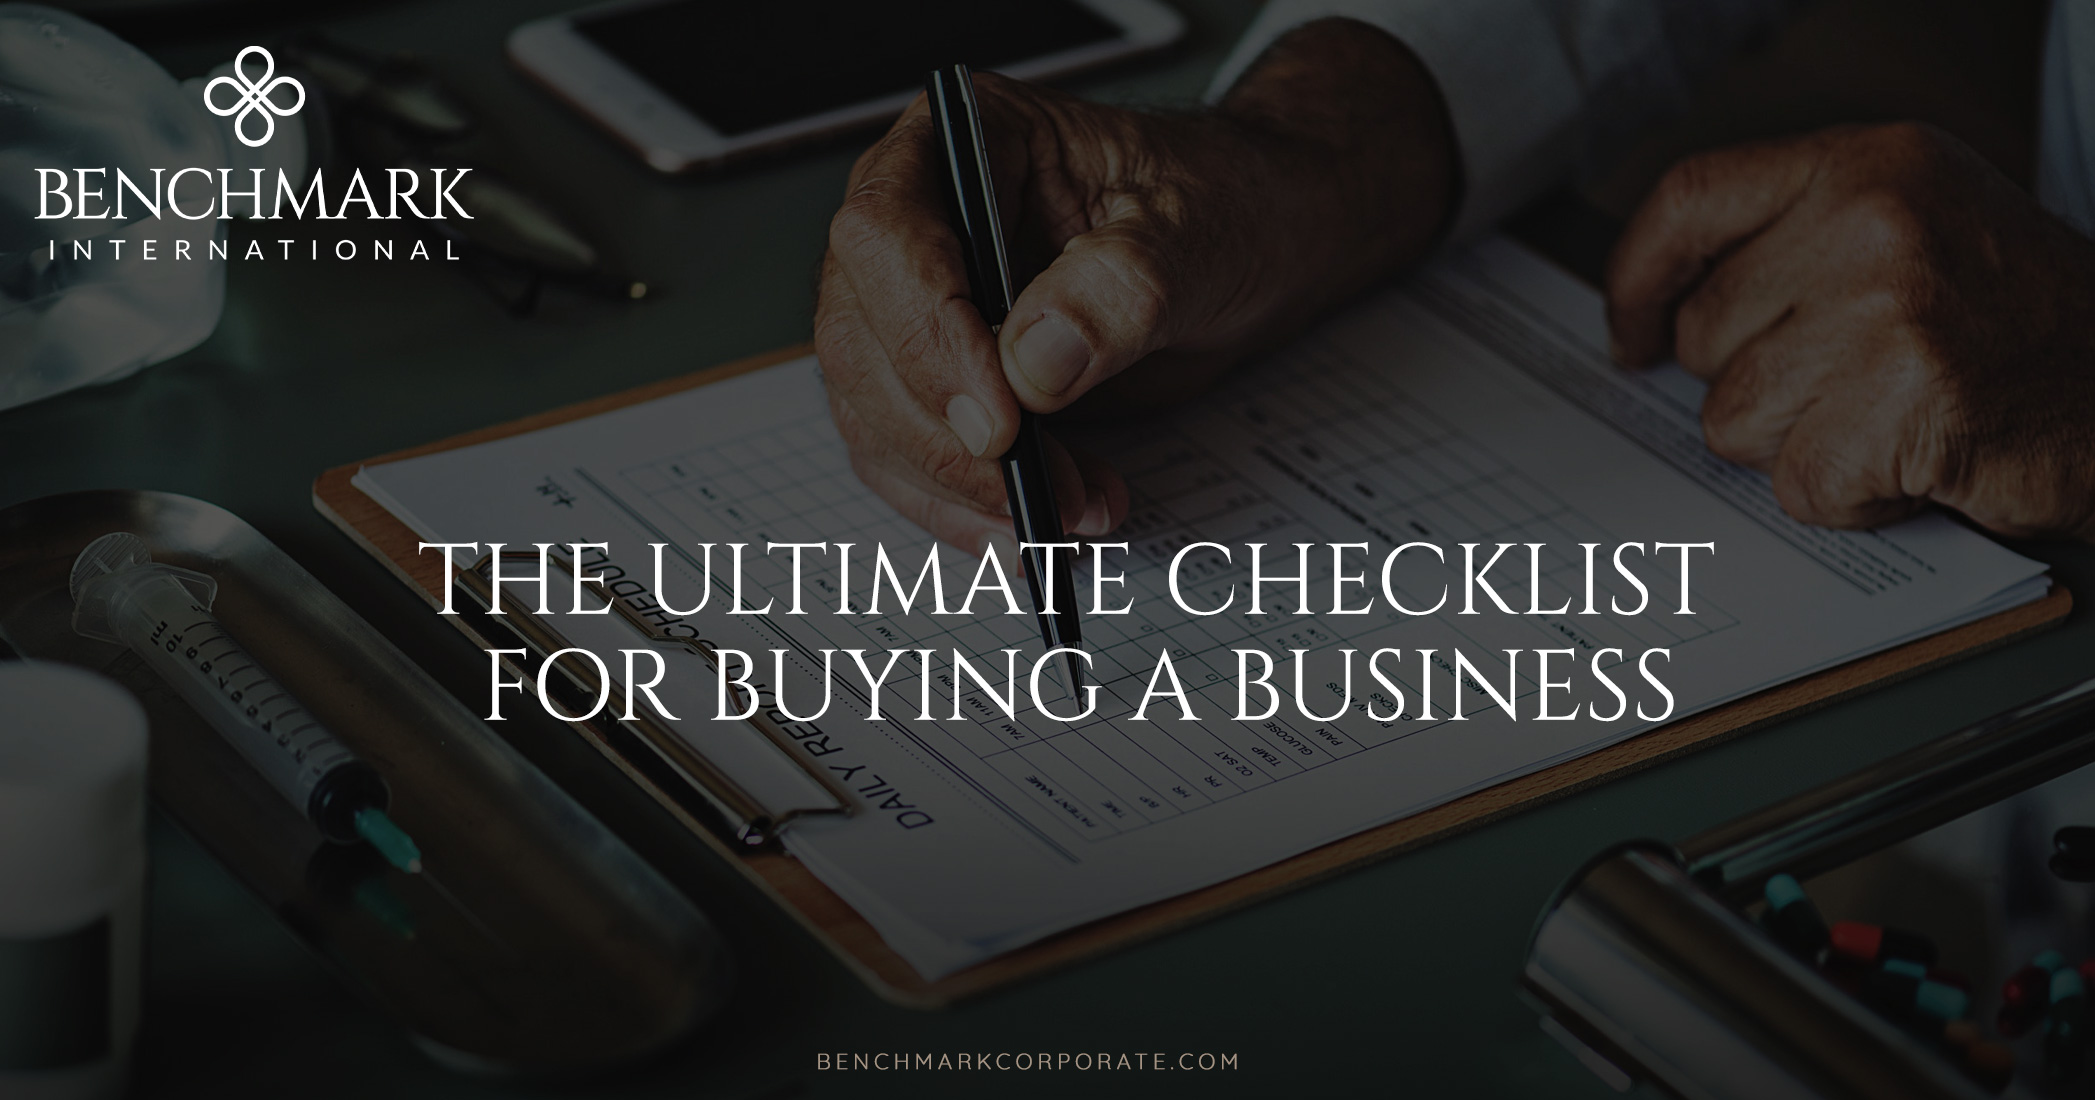 The Ultimate Checklist For Buying A Business